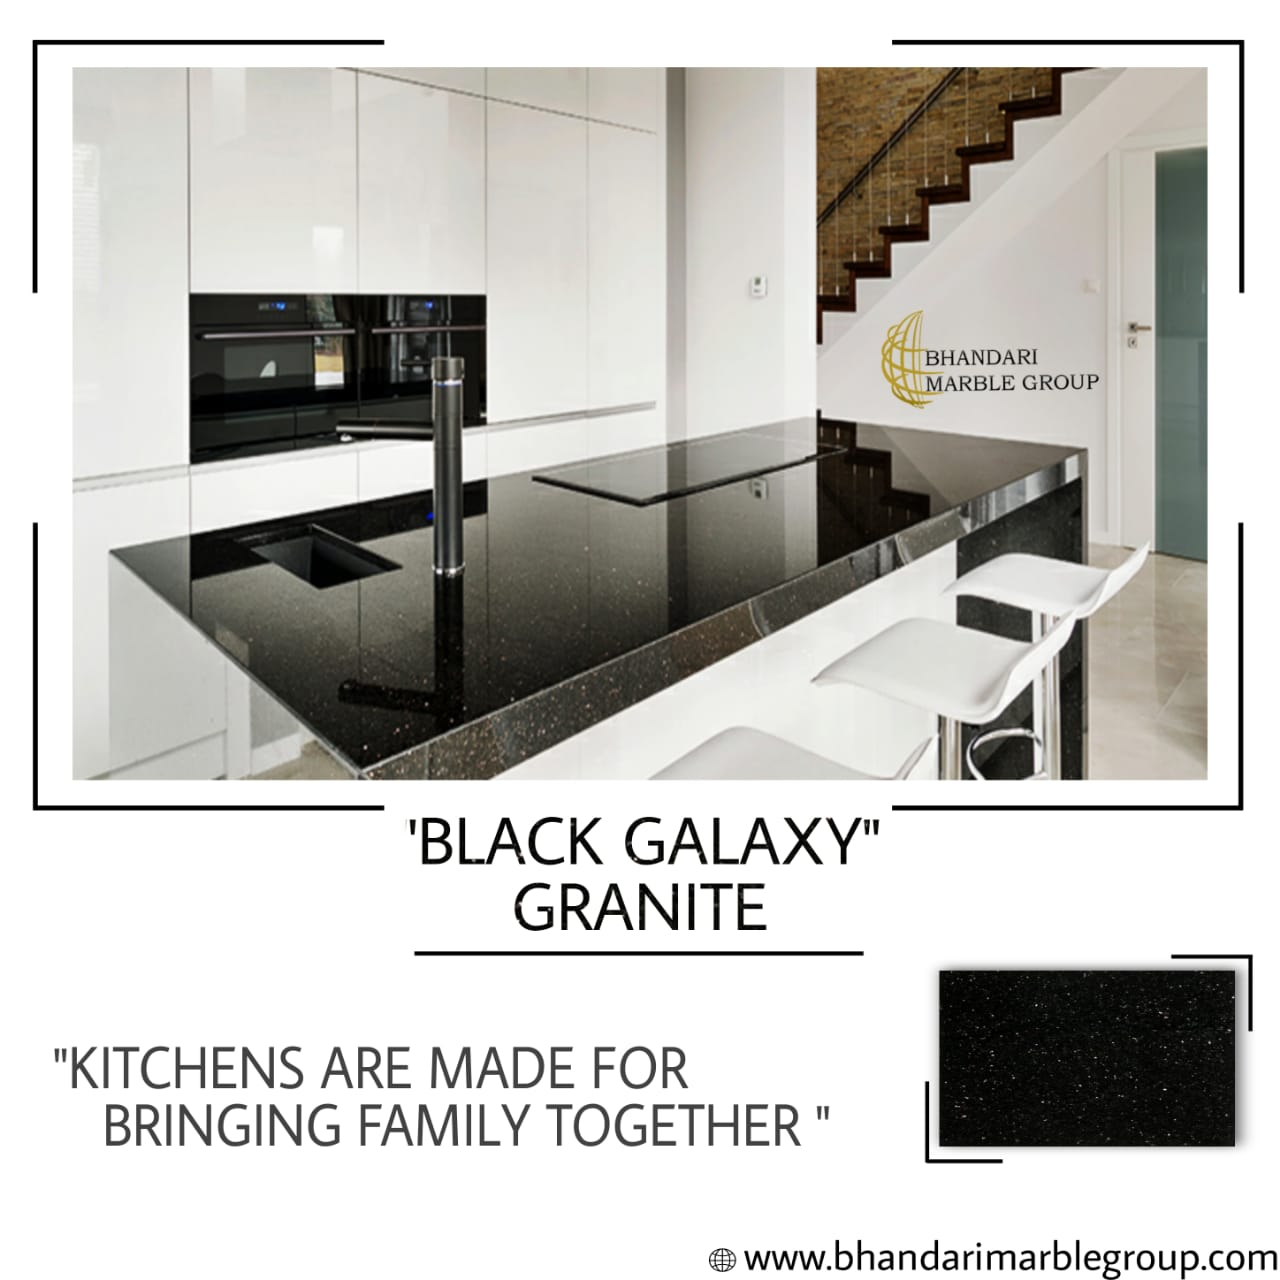 Black Galaxy Granite in India